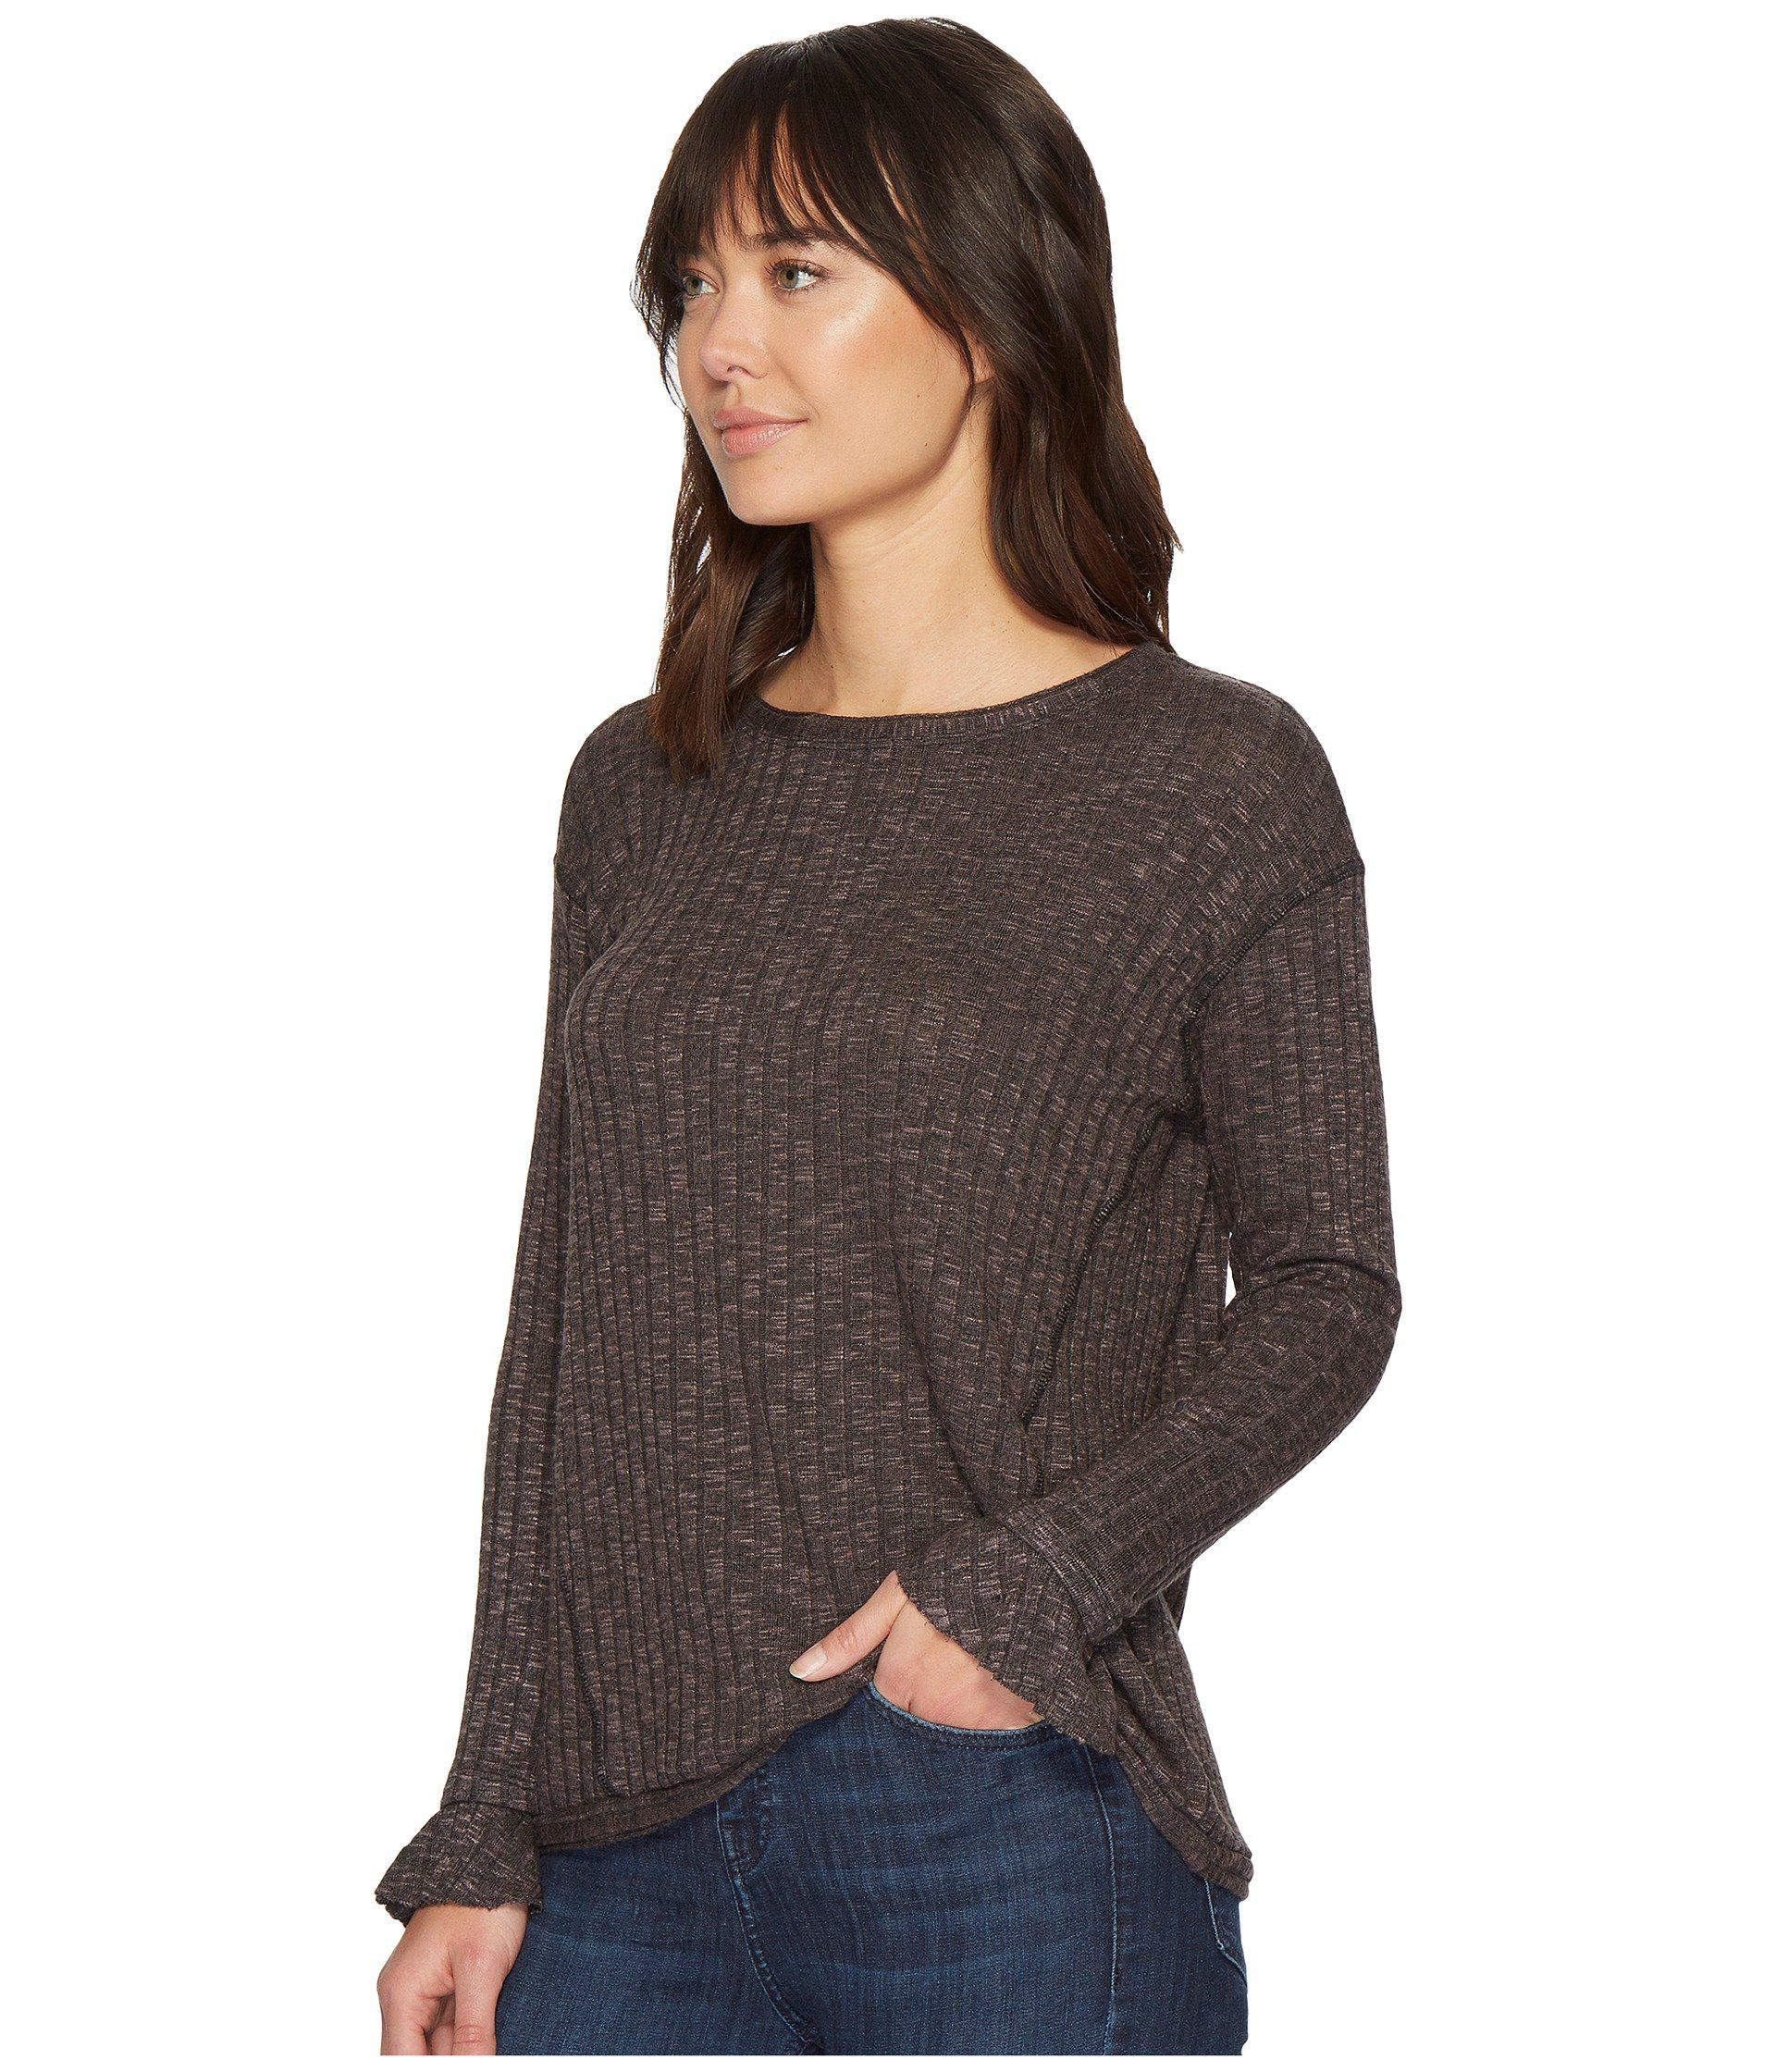 68dbe02a209d93 Lyst - Michael Stars Jasper Poorboy Long Sleeve Crew Neck Top With Flounce  Cuff in Brown - Save 50%